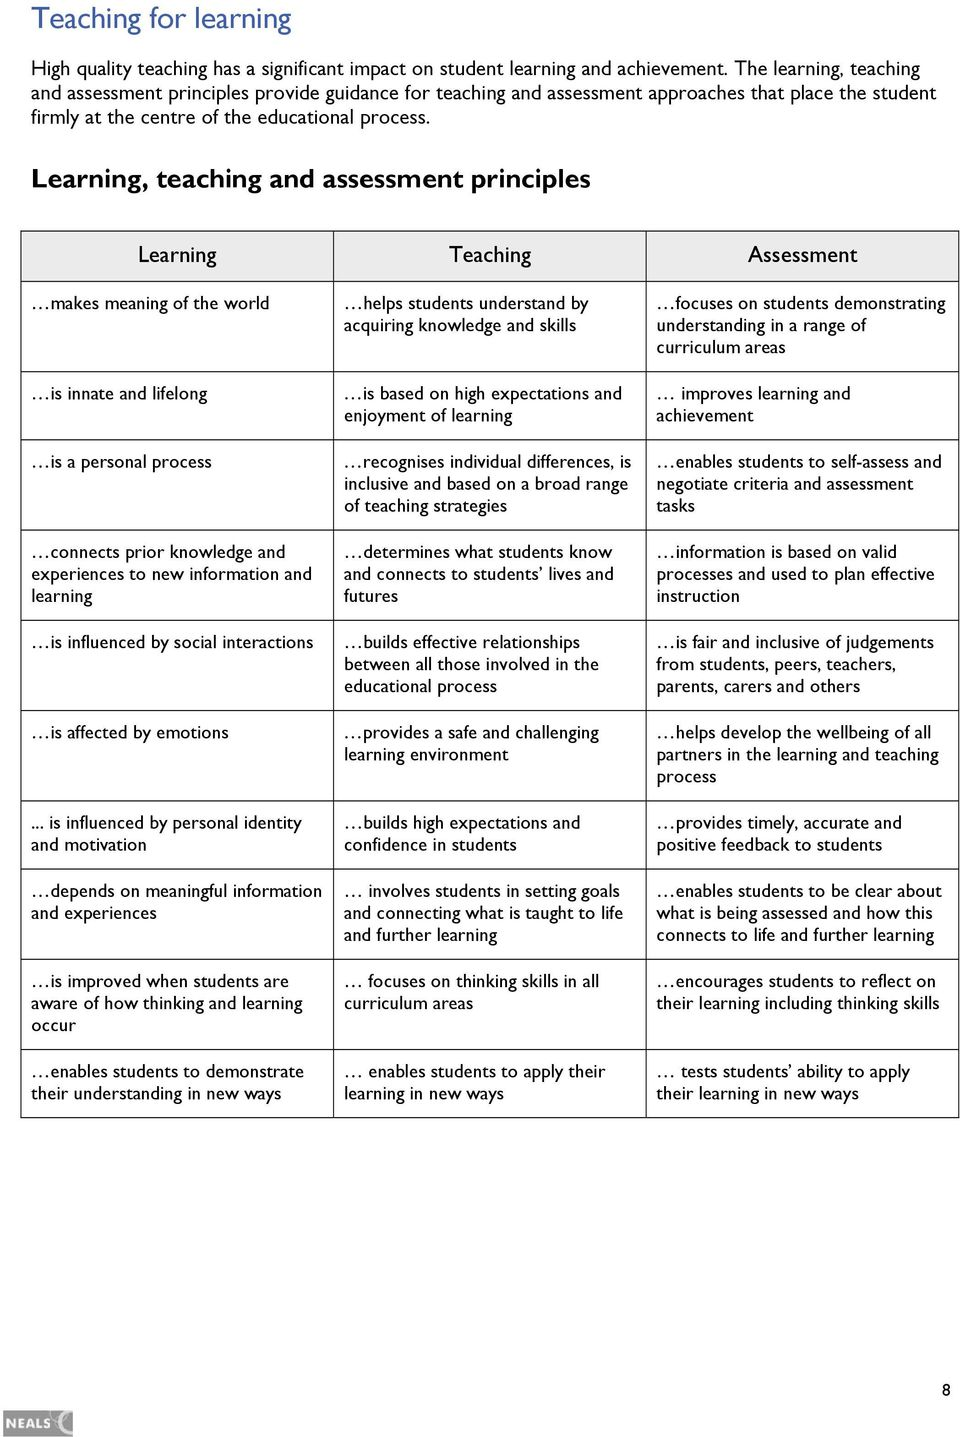 Learning, teaching and assessment principles Learning Teaching Assessment makes meaning of the world is innate and lifelong is a personal process connects prior knowledge and experiences to new